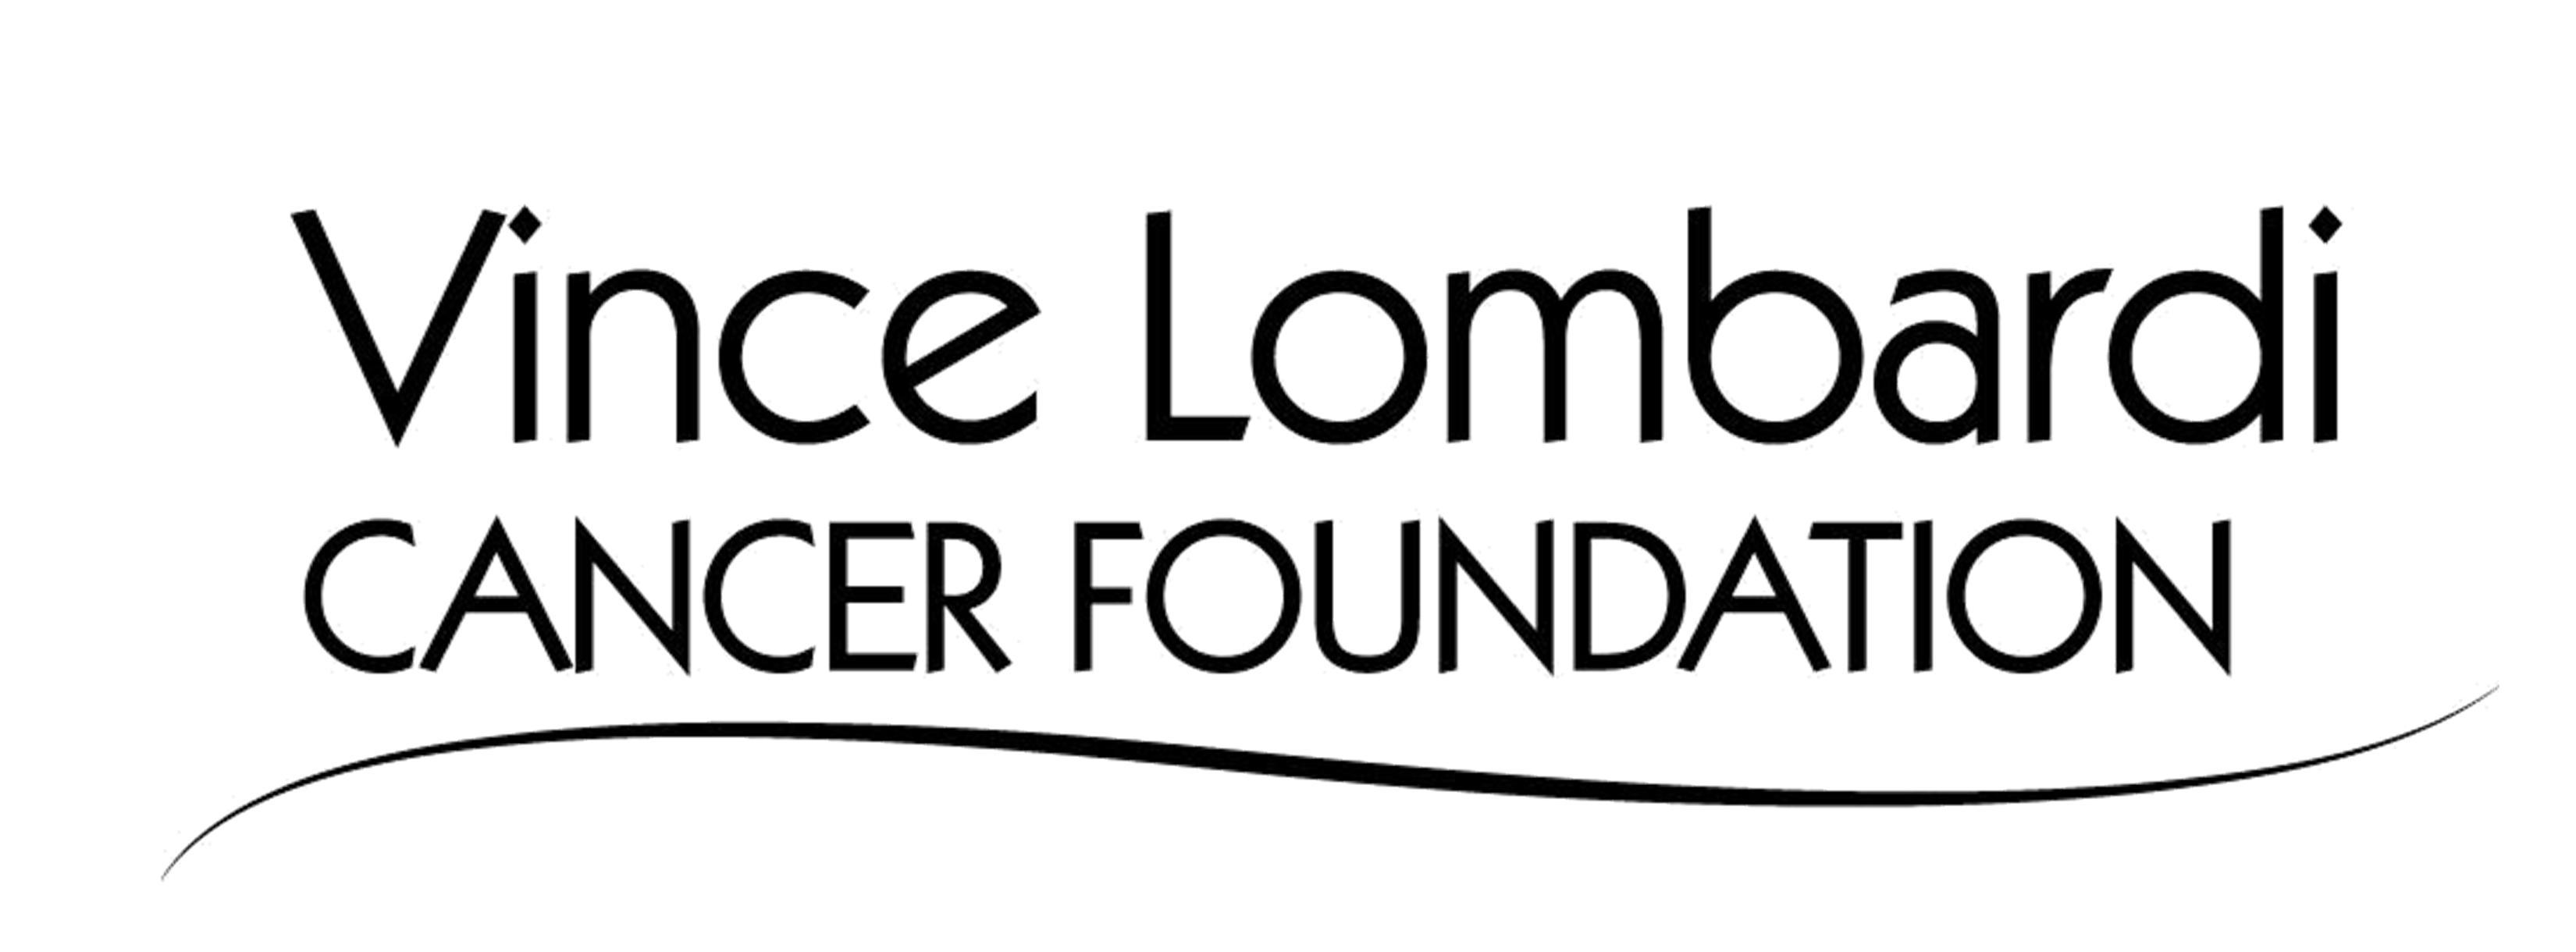 Vince Lombardi Cancer Foundation Logo